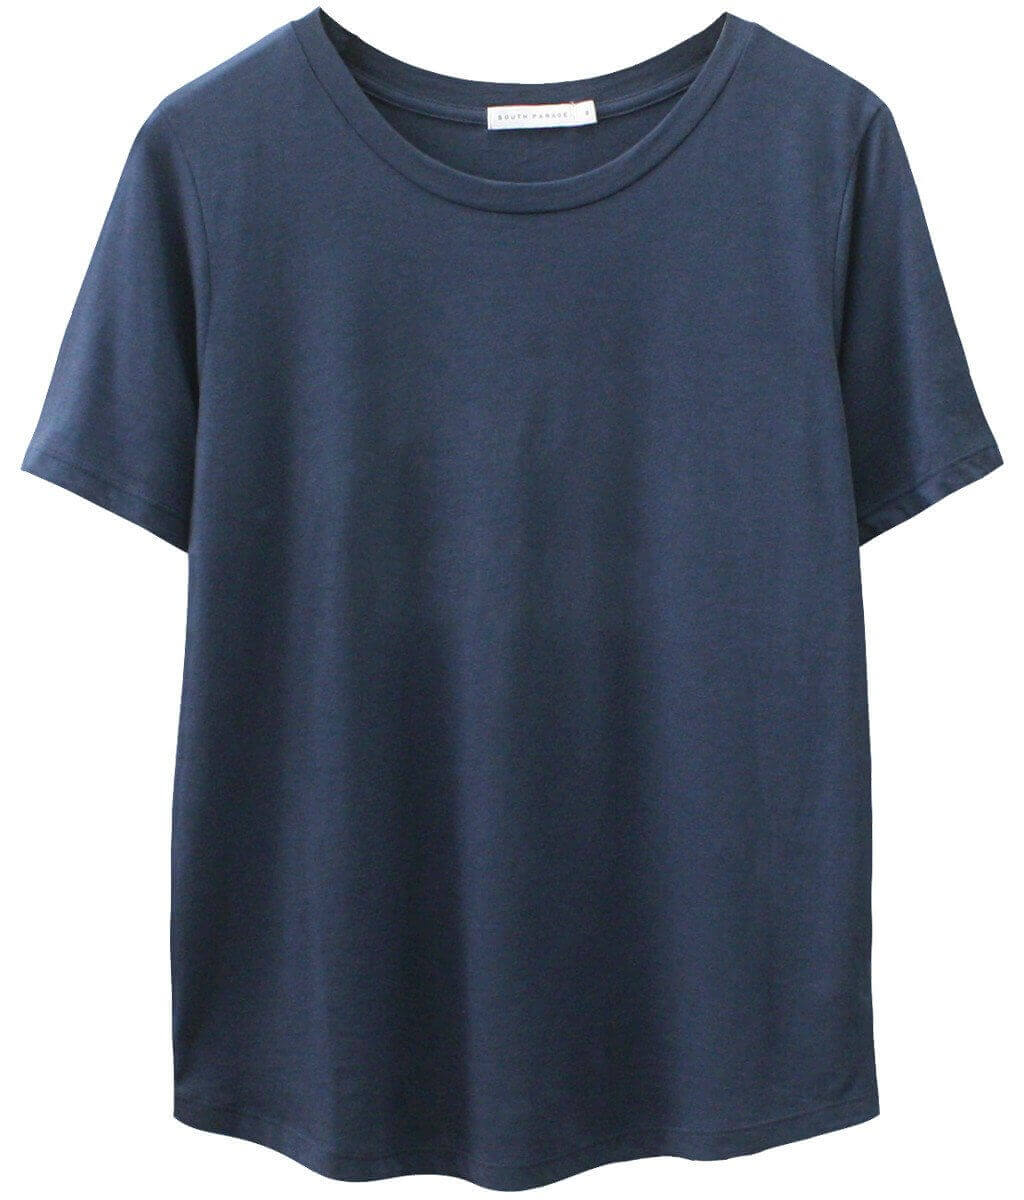 Lola - Basic Loose Tee - Navy Blue